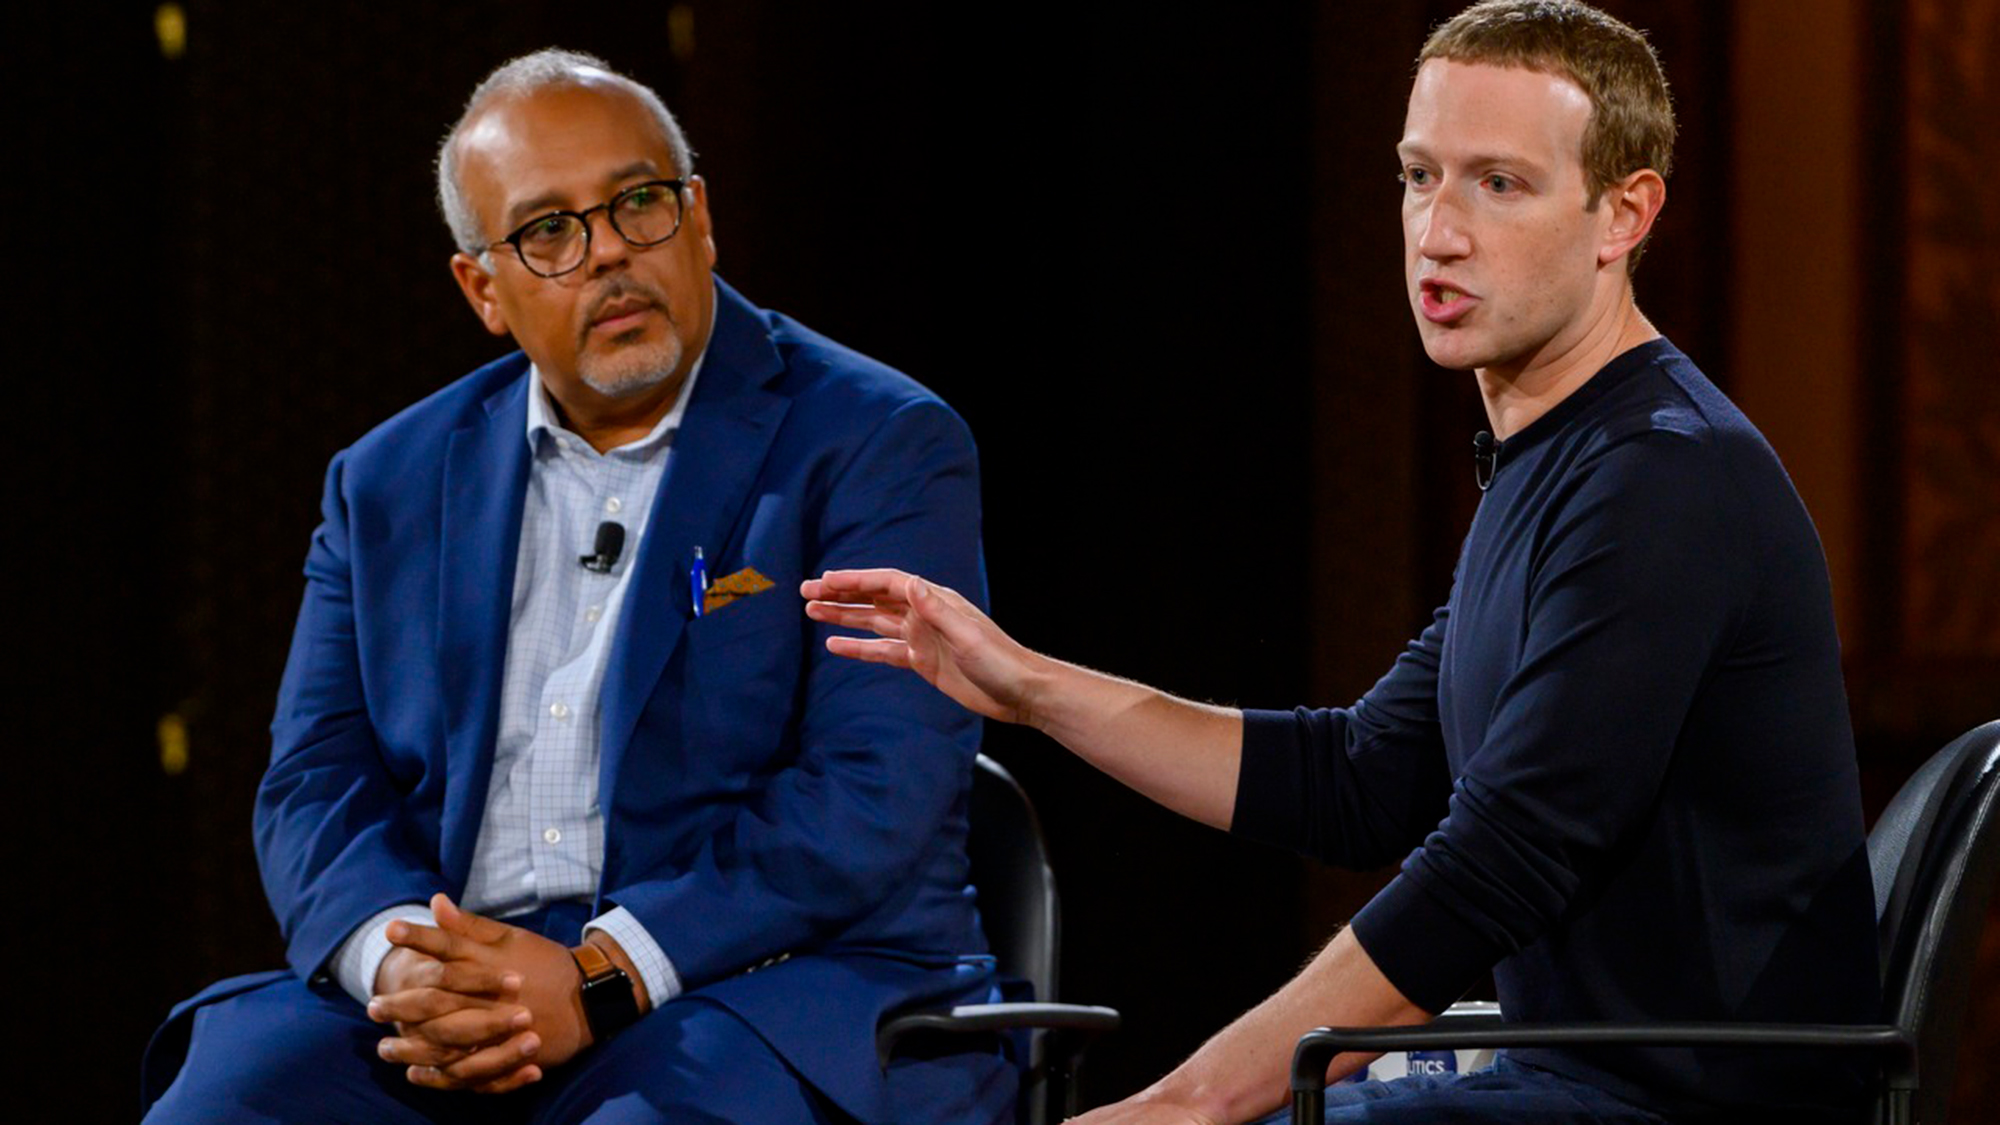 Mo Elleithee and Maerk Zuckerberg talk while seated on the stage.